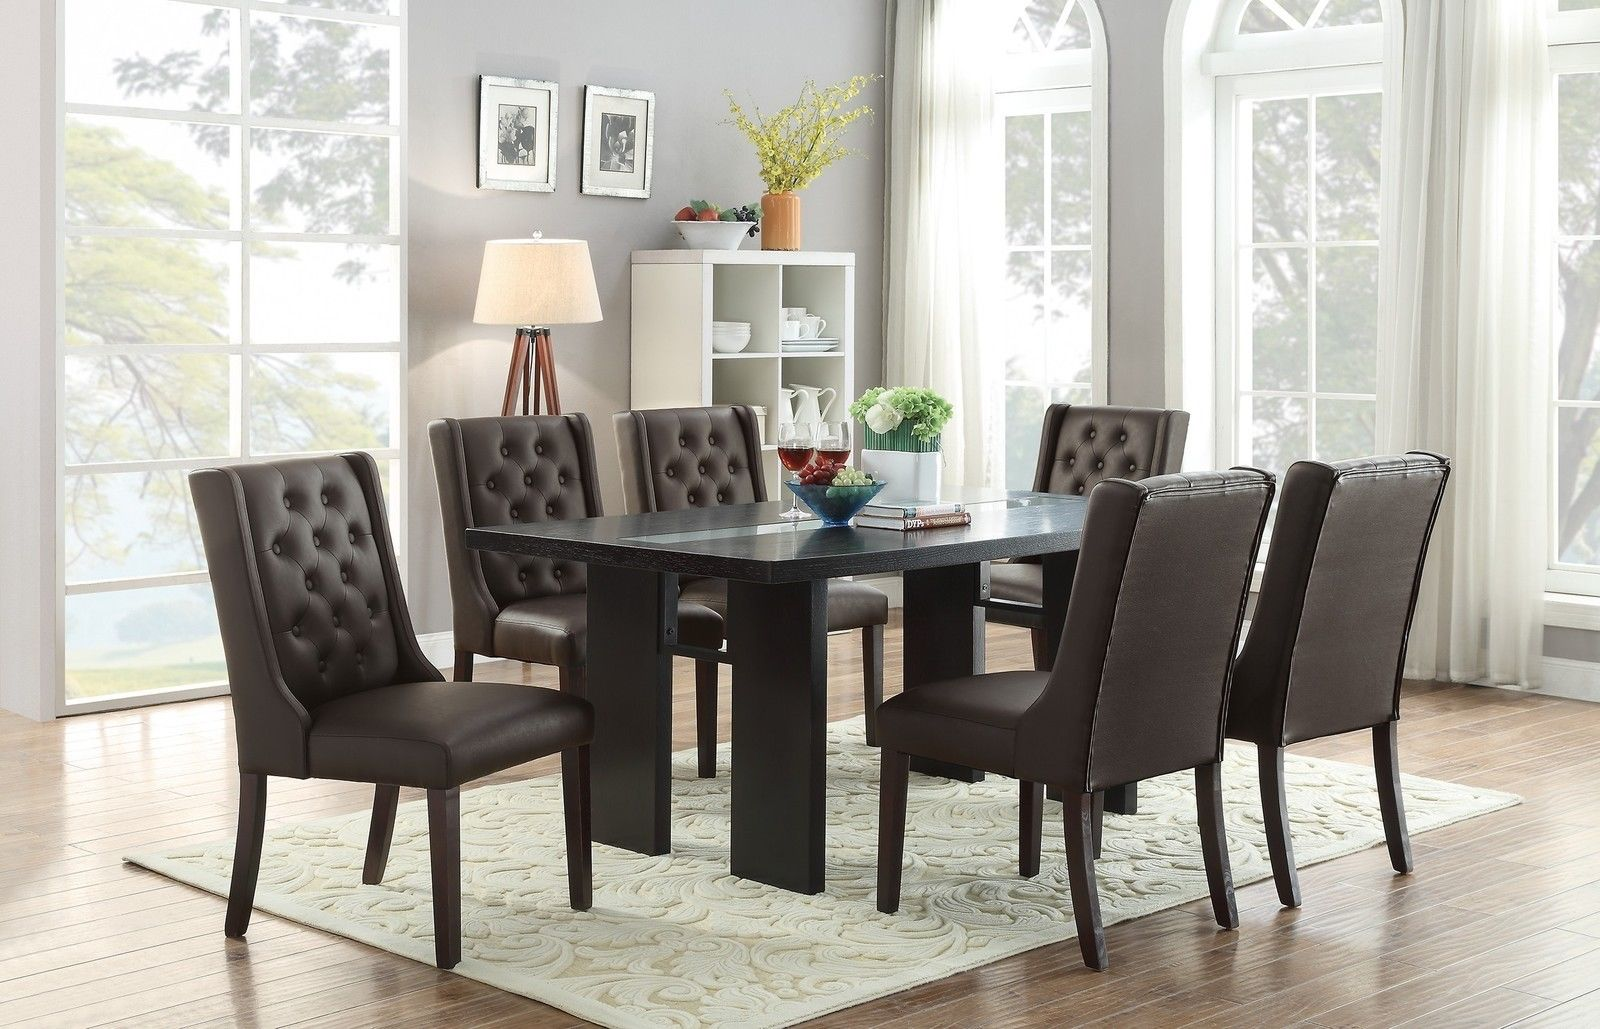 7pc Espresso Or White Parson Style Soft Cushion Chair Dark Brown Table Dining Set